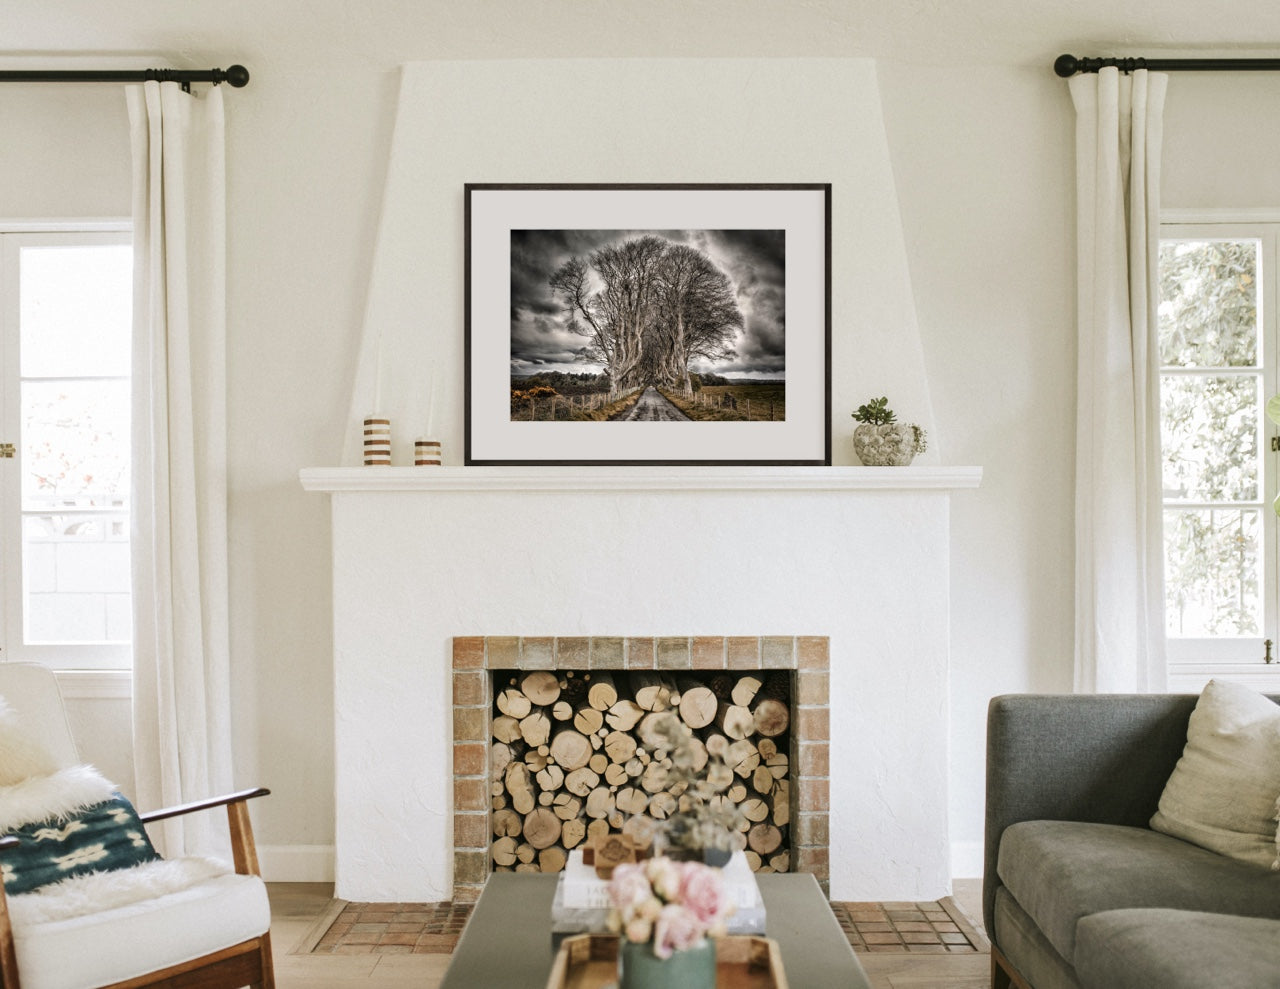 Fireplace mantel with framed black and white tree art